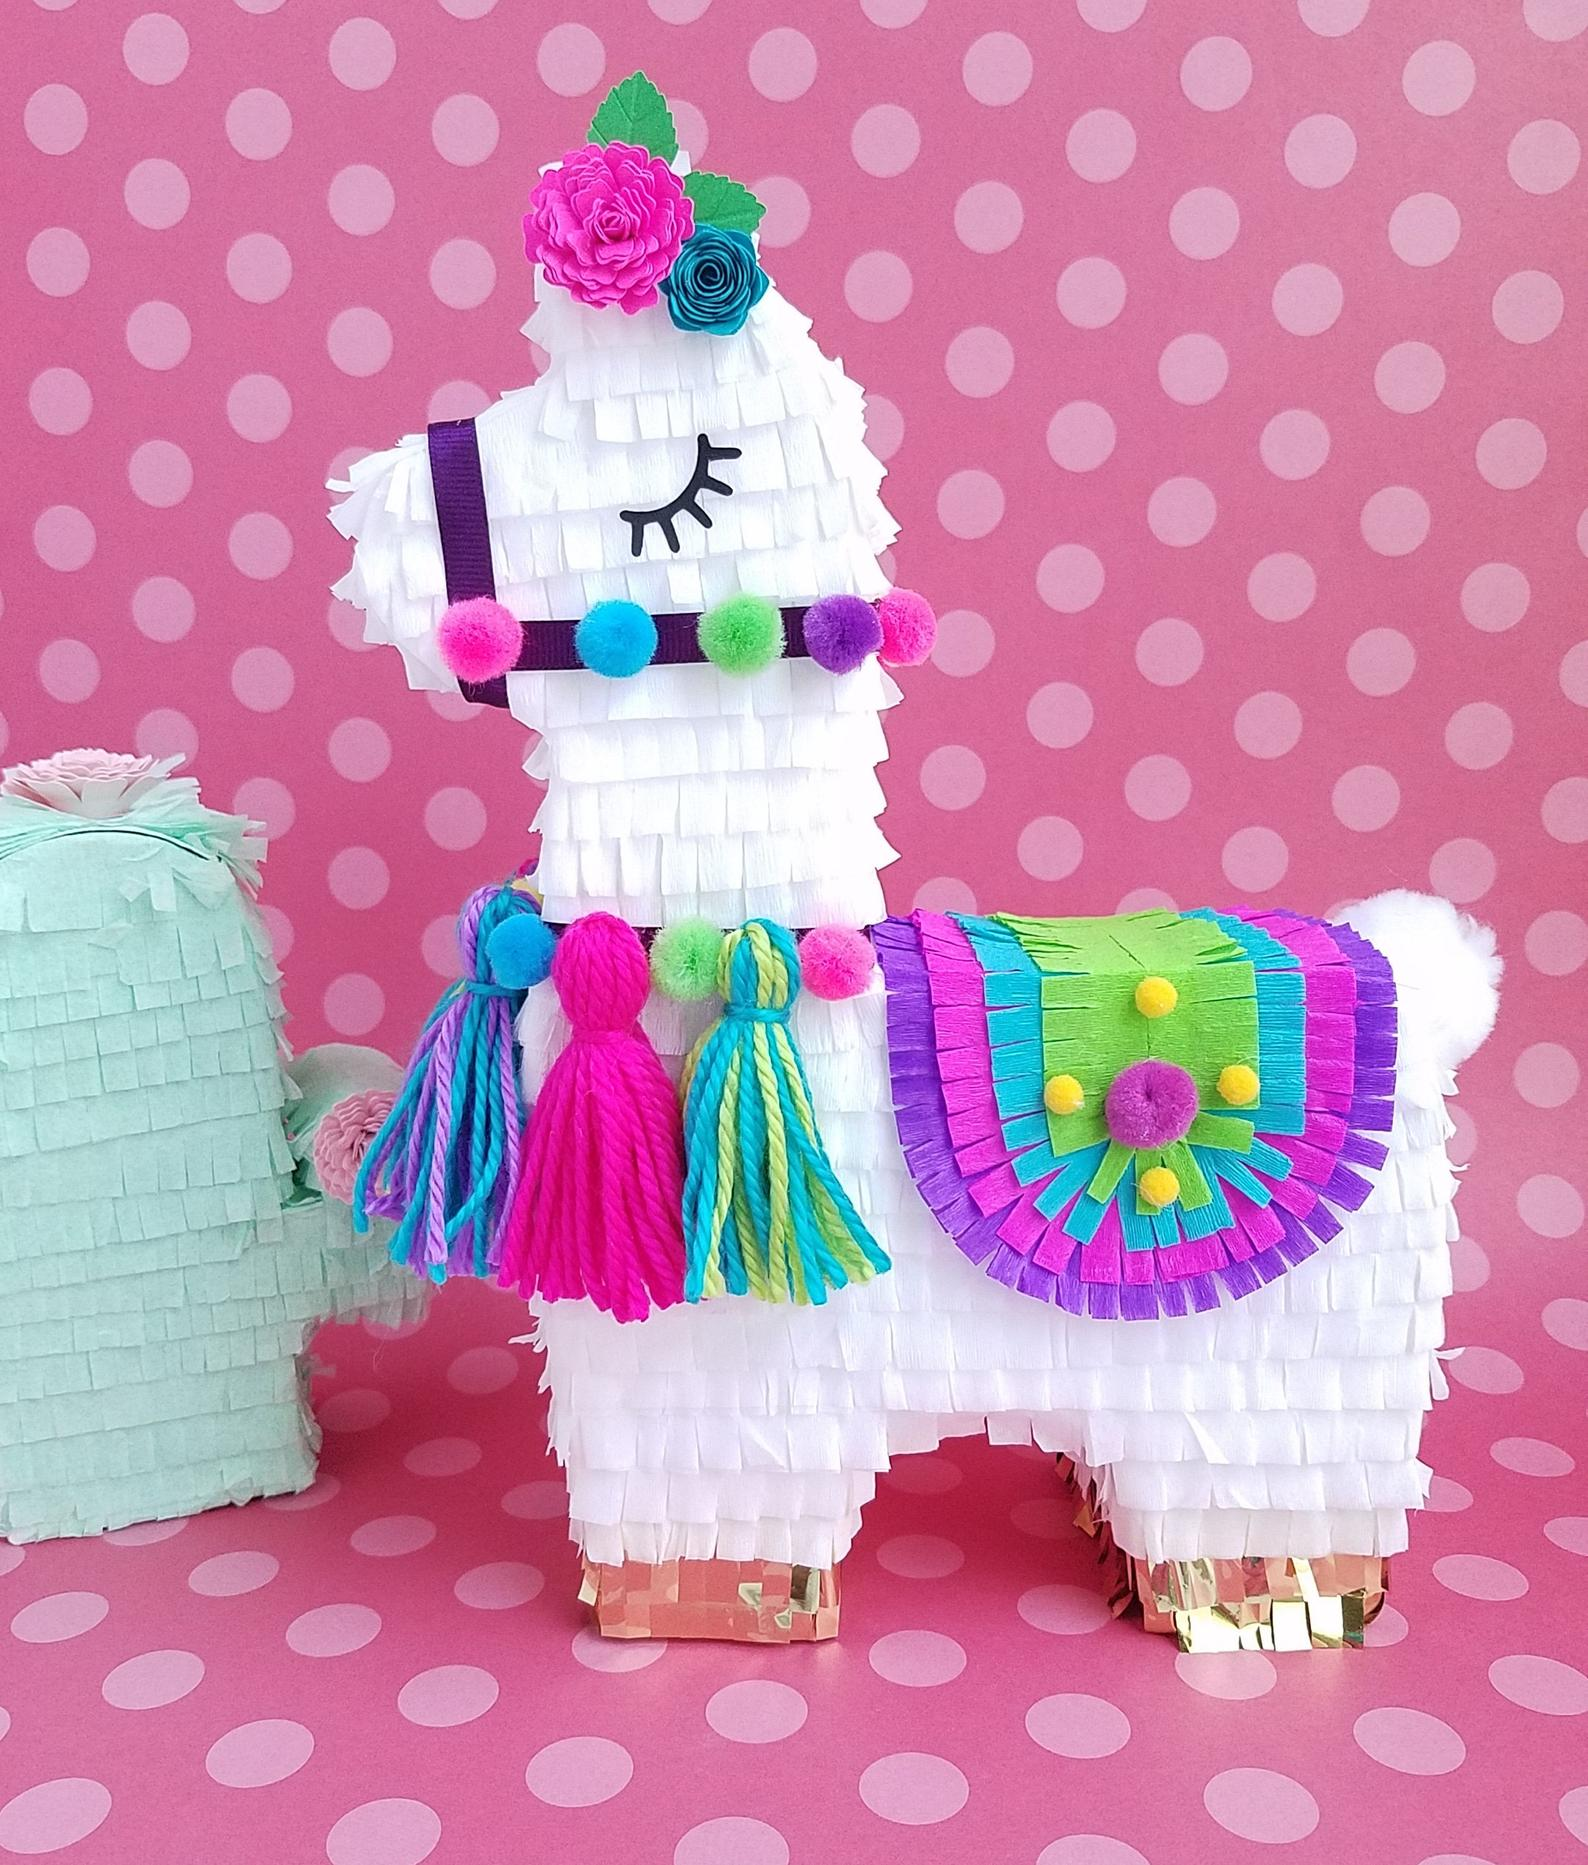 Llama Pinata Decorations - Llama Birthday Party Pinata - Llama Shower Decor - Fiesta Shower Decorations